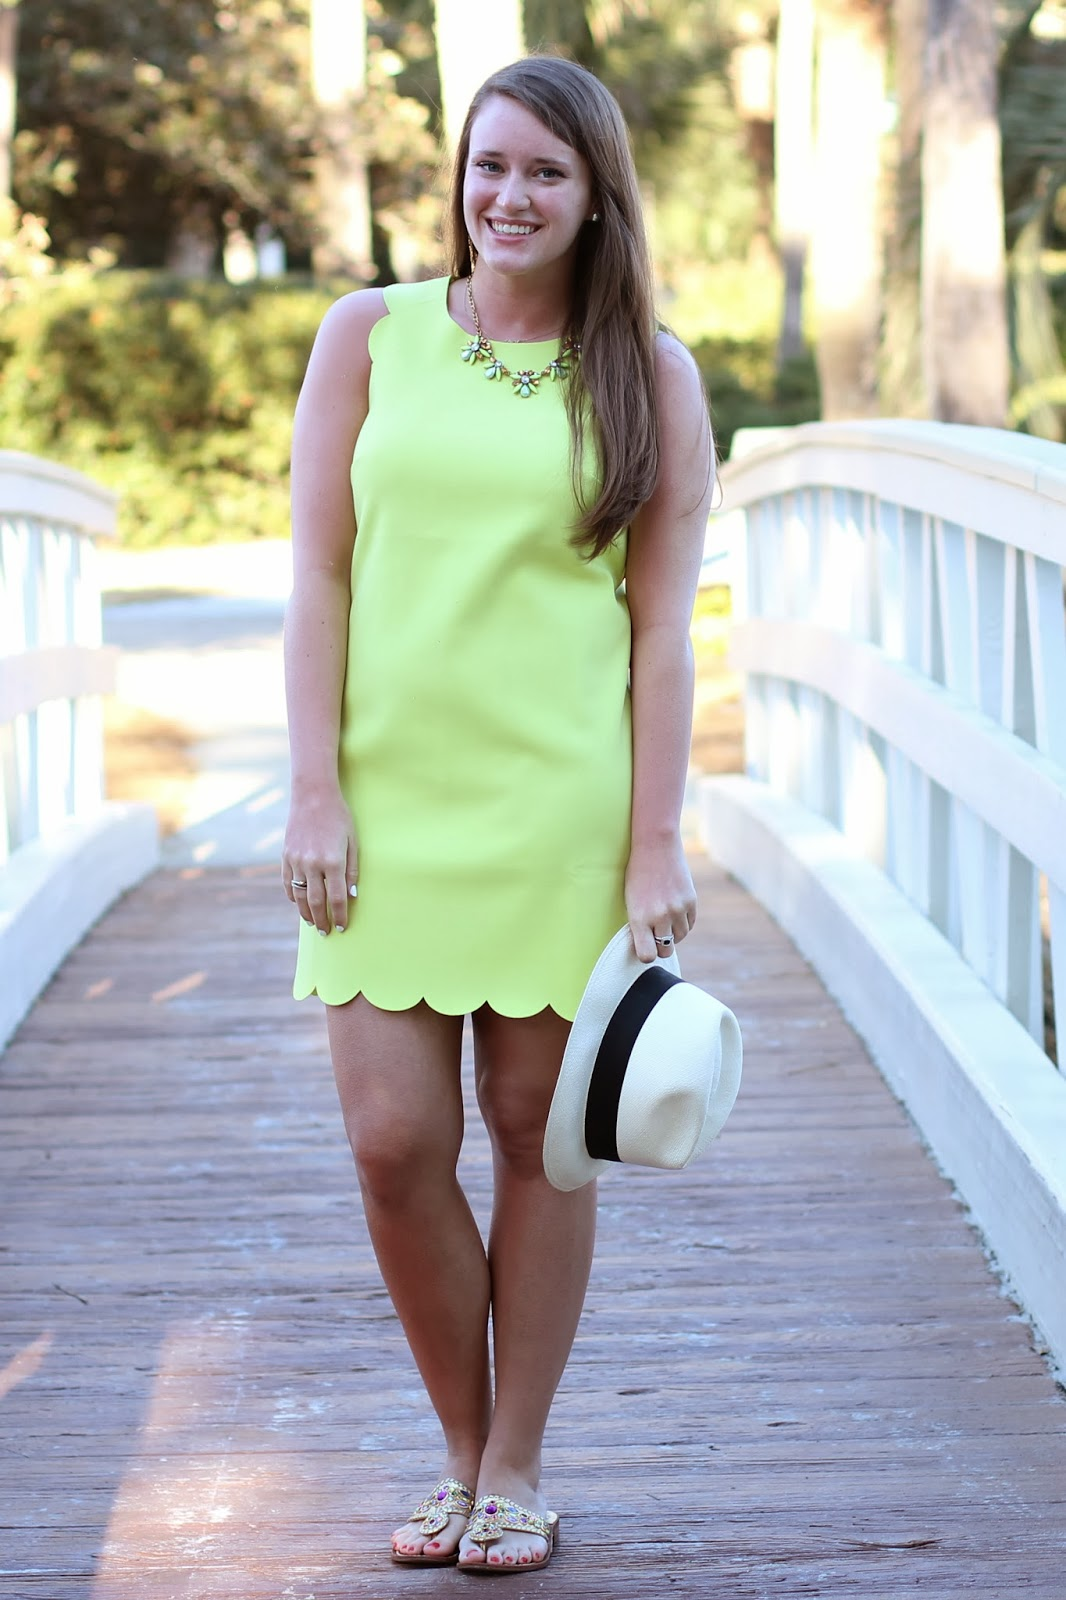 j. crew scallop shift dress, pale citrus j. crew, pale citrus, scallop dress, scalloped dress